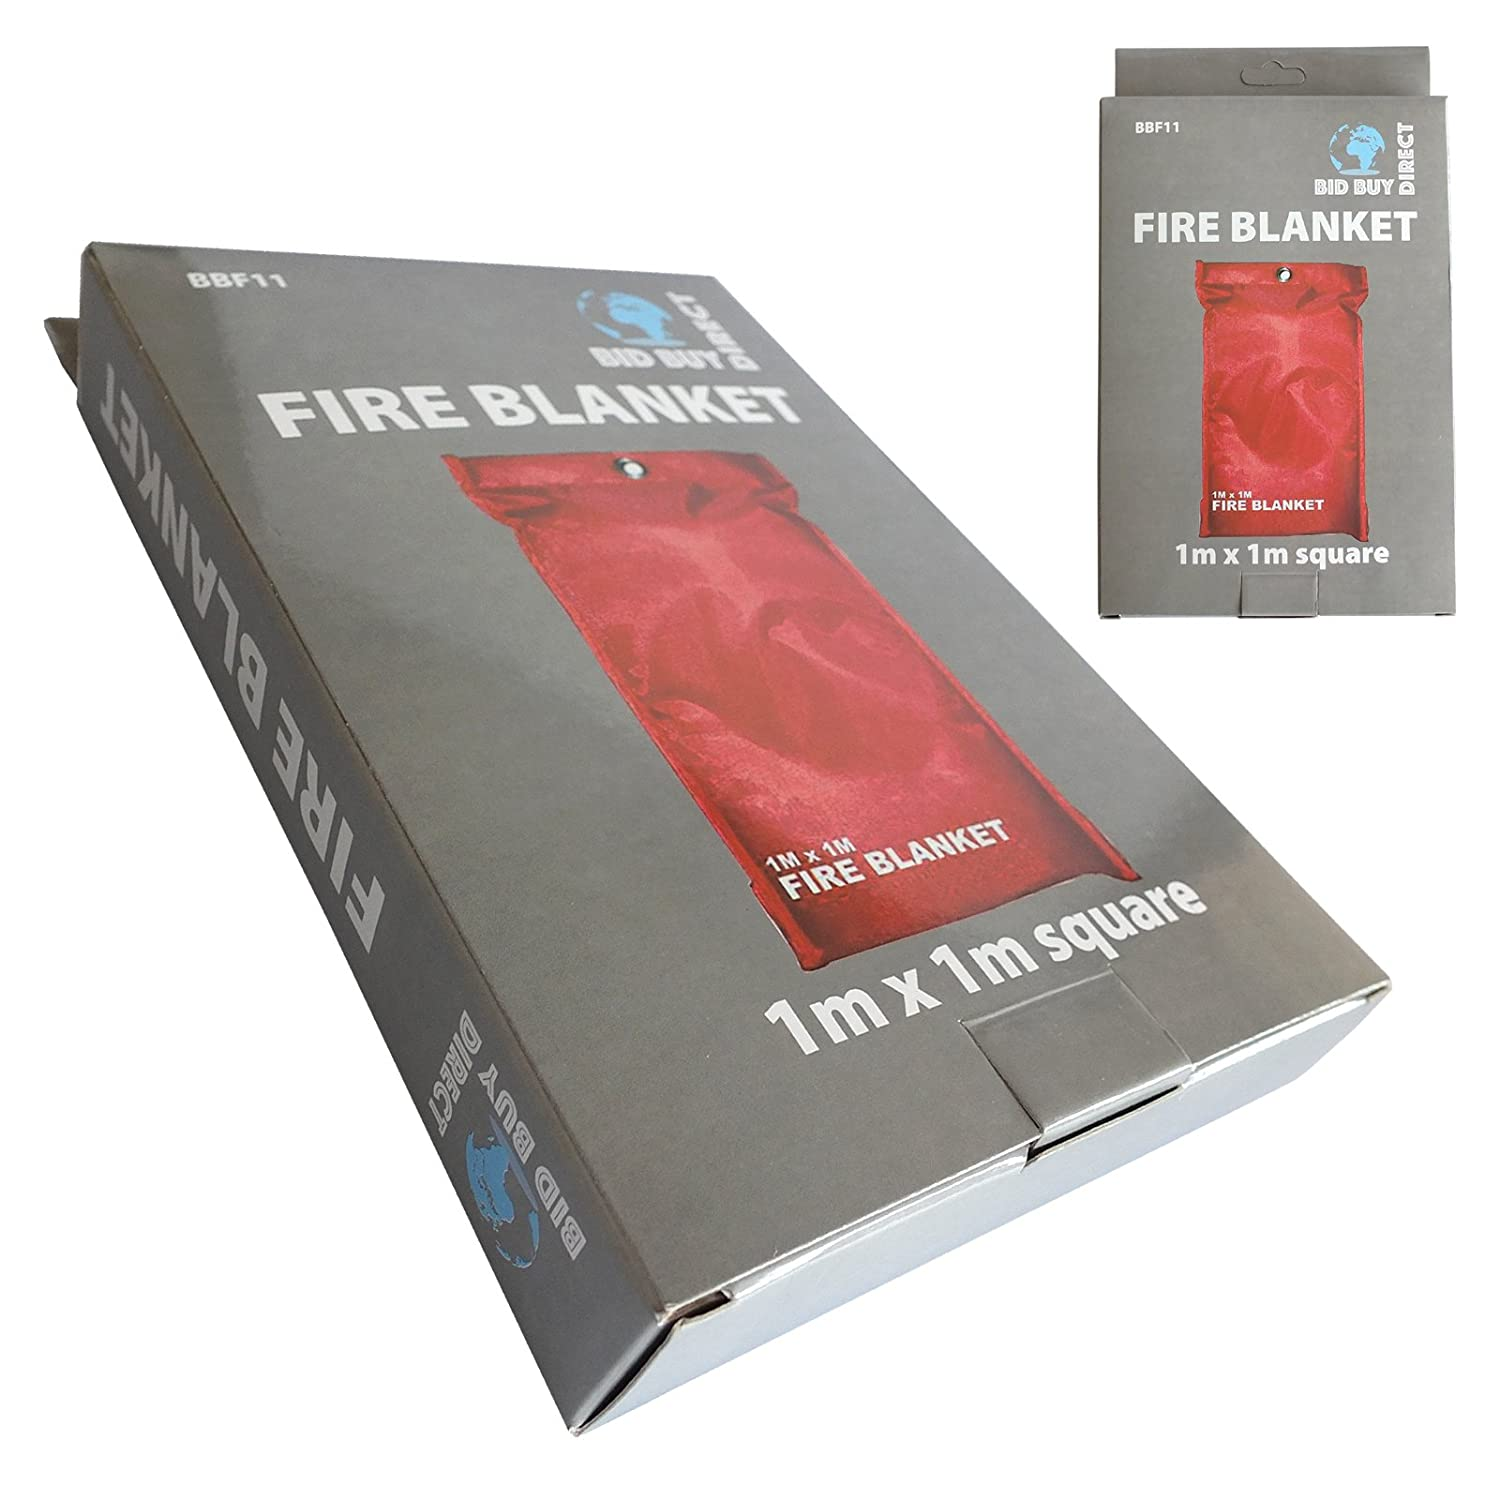 1m x 1m Fibre Glass Fire Blanket - Wall Mountable & Quick Release Tabs Mavs Store